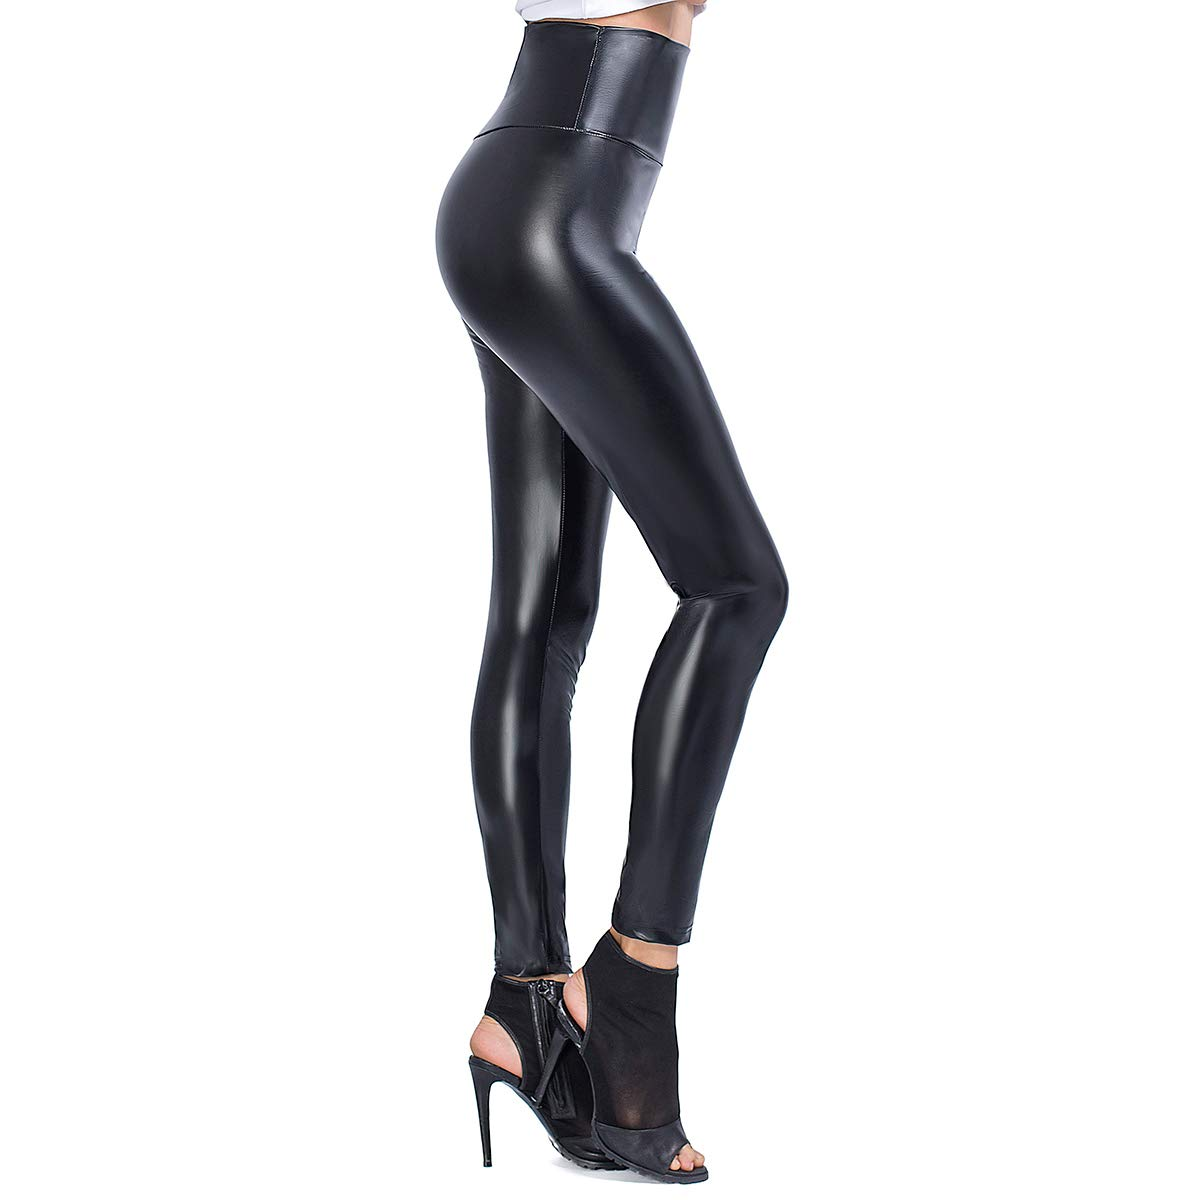 JTANIB Womens Faux Leather Leggings Pants, Sexy High Waisted Stretchy Shaping Hip Push Up Tights Black L